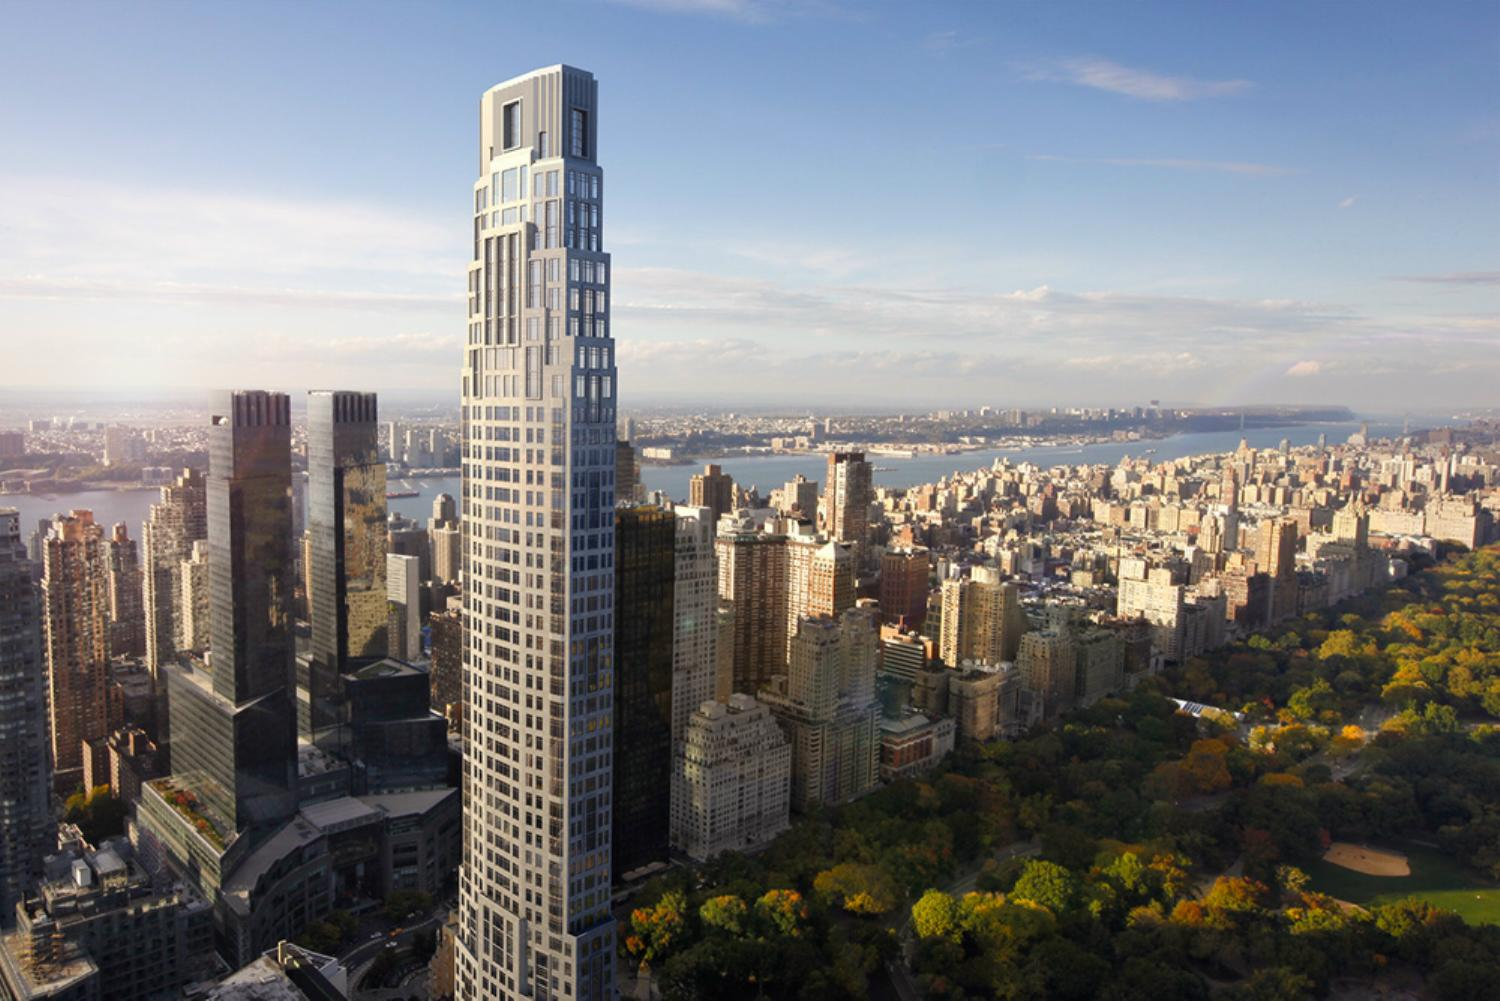 Birds eye view of 220 Central Park South luxury condos in NYC. Residential tower next to Central Park with city skyline.